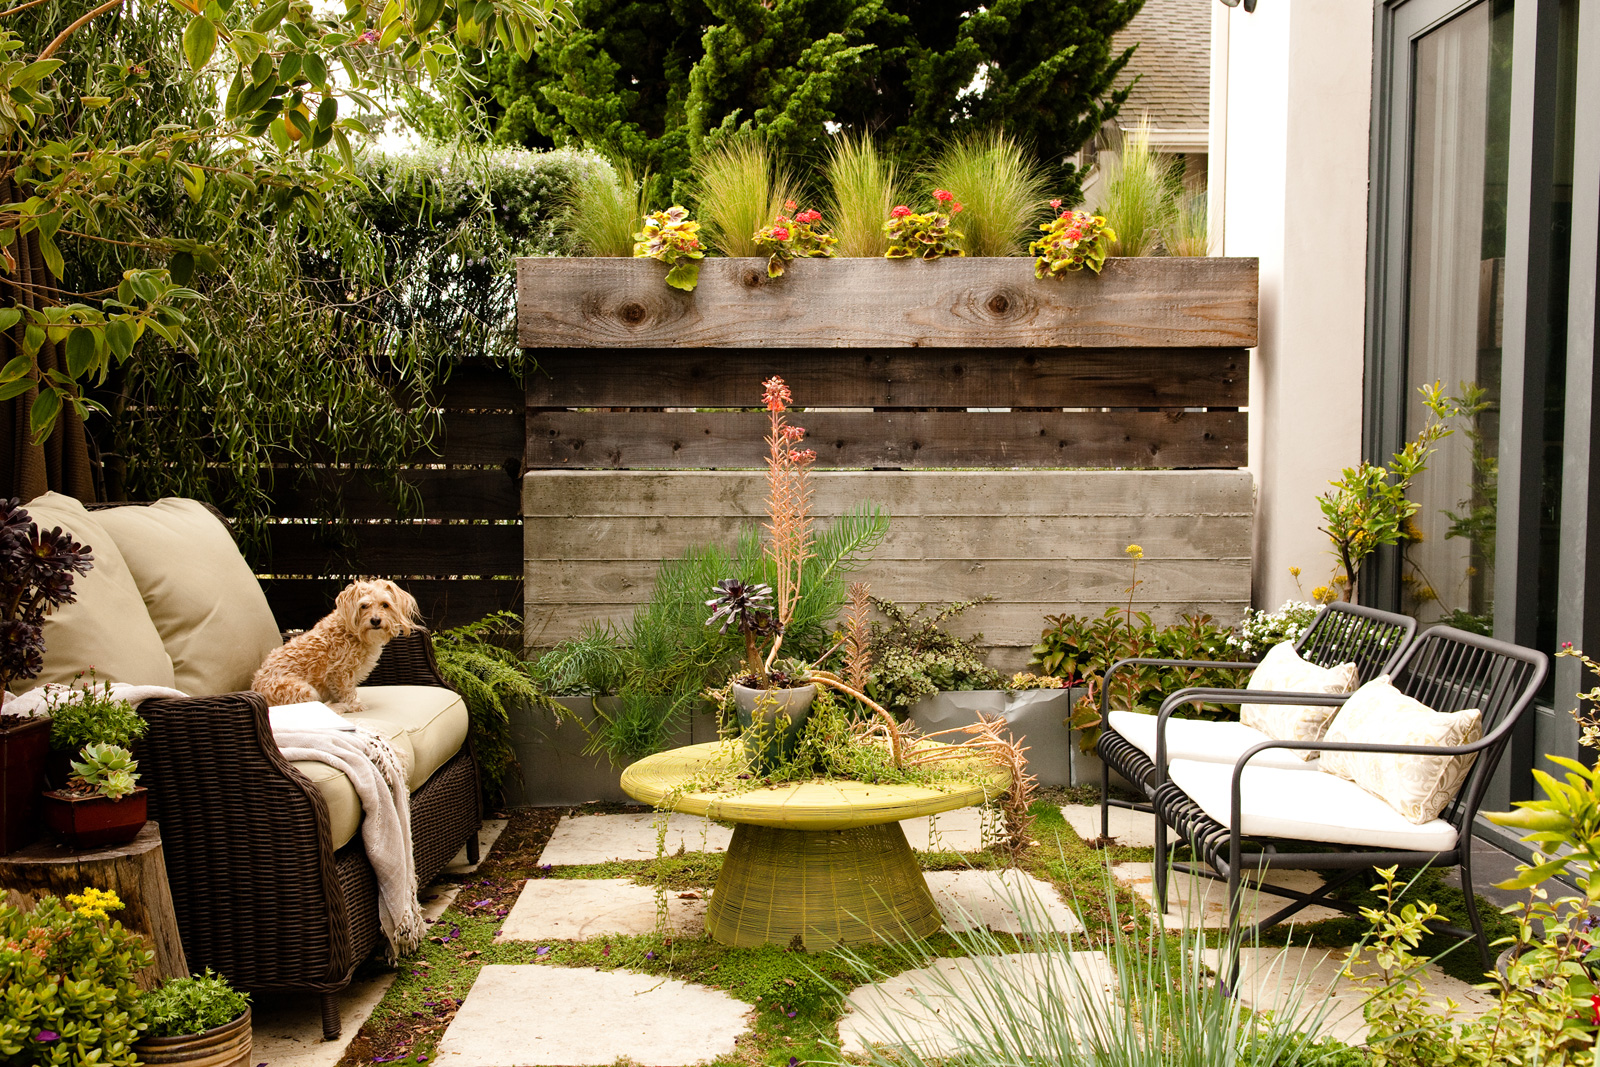 Marvellous Small Backyard Ideas How To Make A Small Space Look Bigger Diy Backyard Landscaping Projects John Deere 52 Backyard Landscaping Projects outdoor Backyard Landscaping Projects